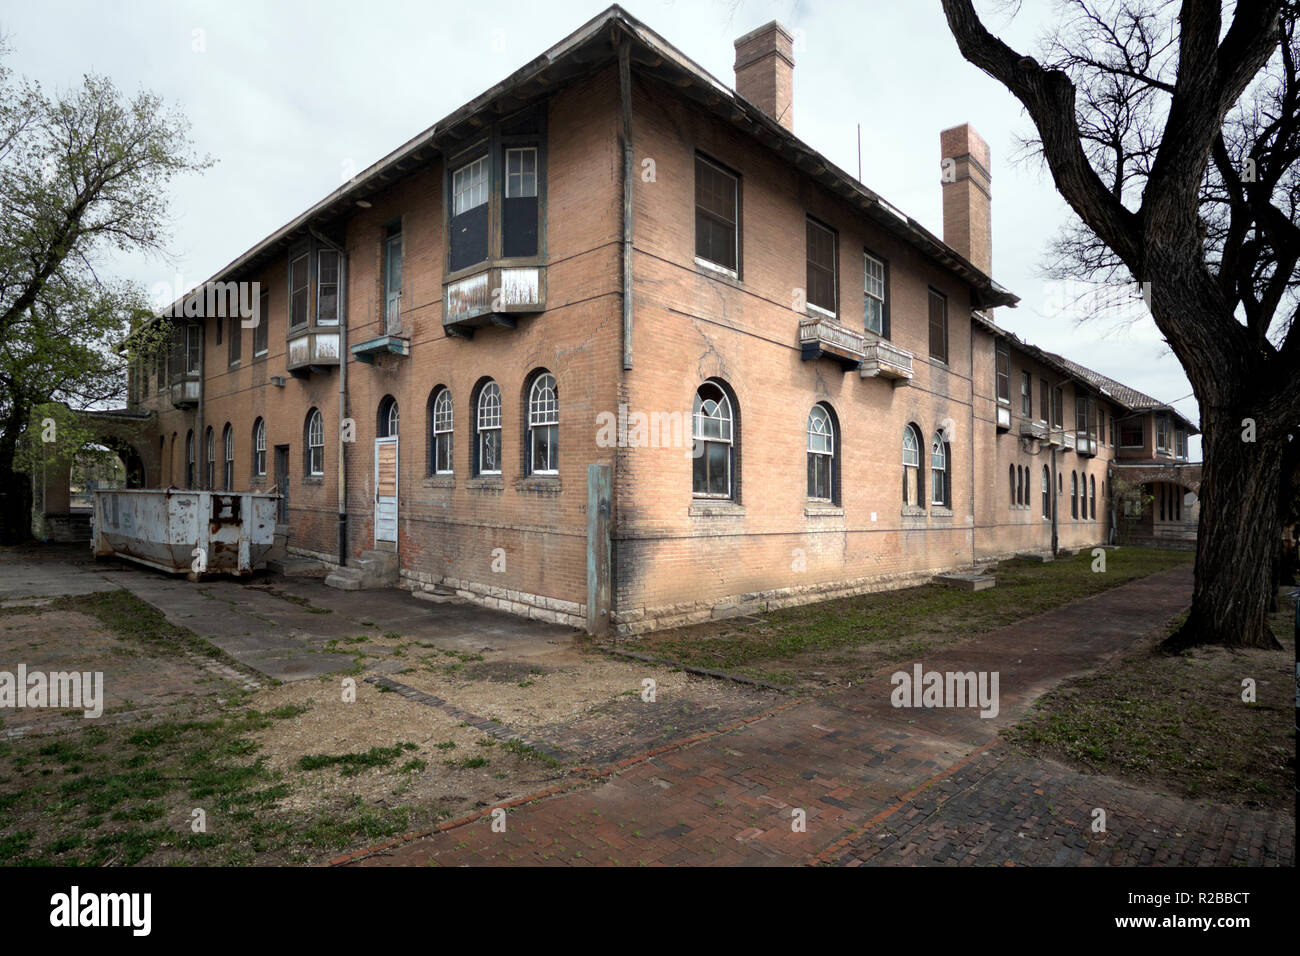 Hotel being renovated in Las Vegas, New Mexico. Stock Photo